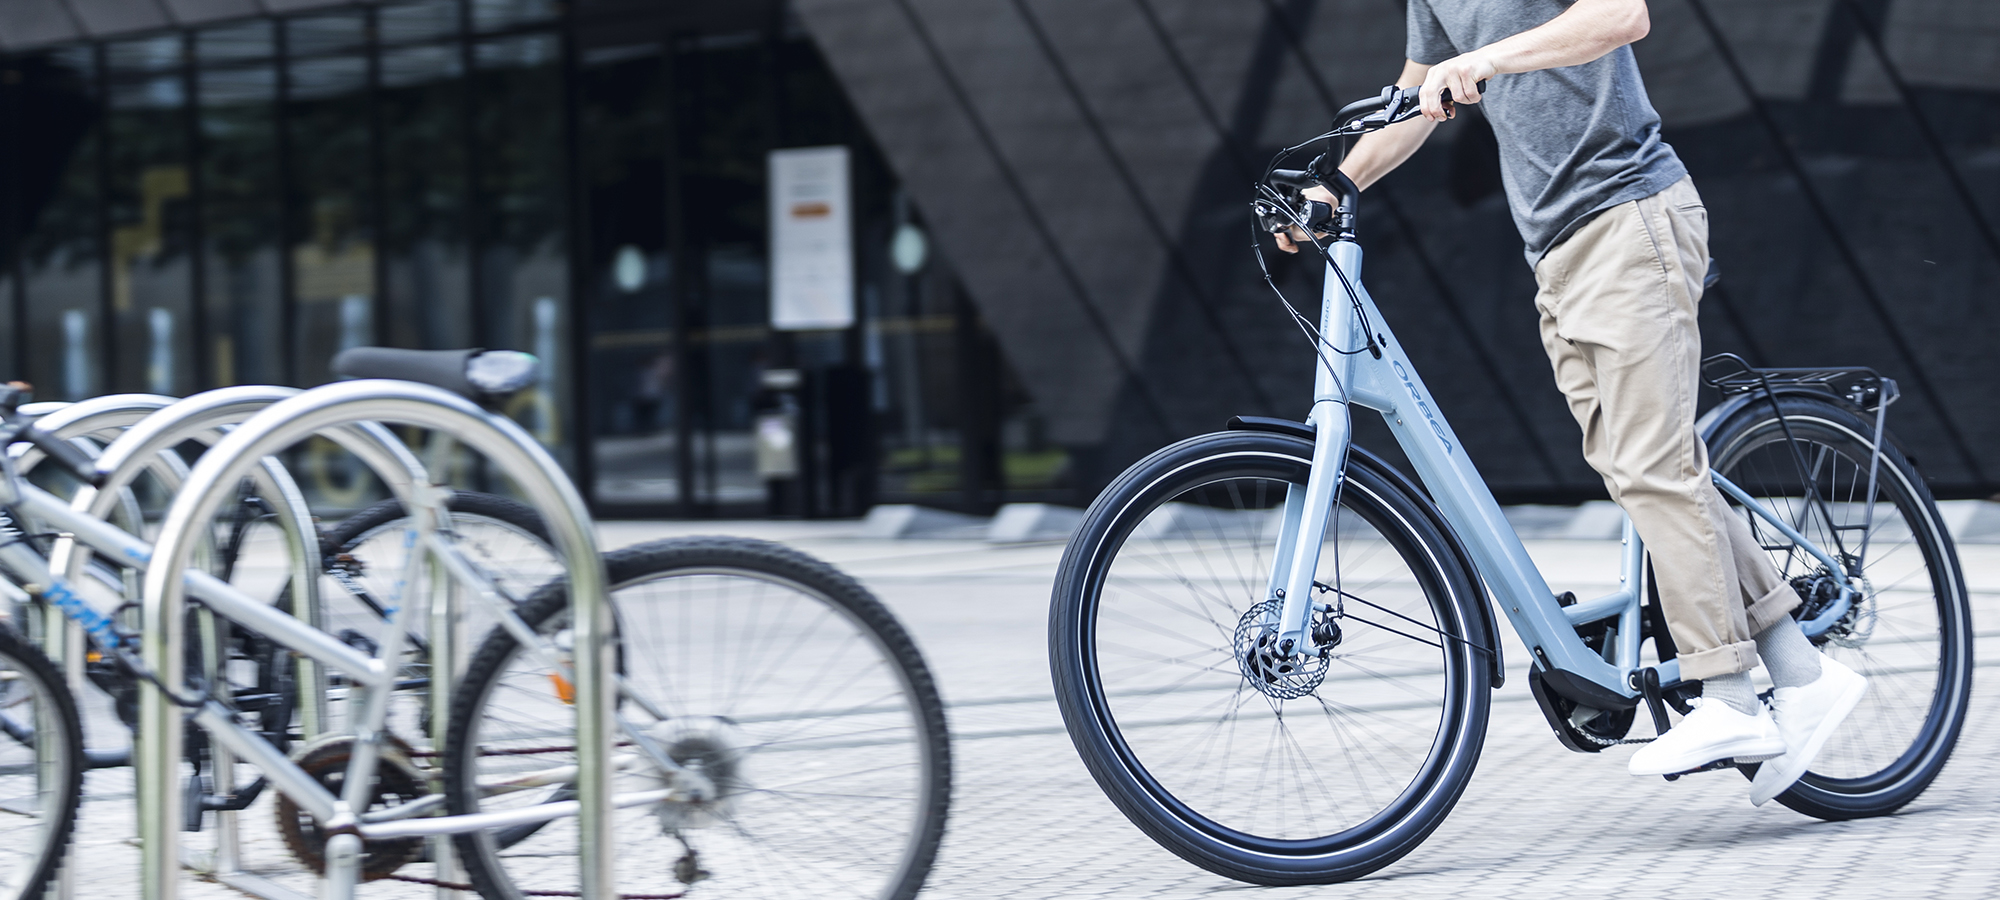 8711e3f52e6 Rather than a bulky and heavy battery, Optima E40 integrates an ebikemotion  system that is lightweight and small. The discreet battery is hidden inside  the ...